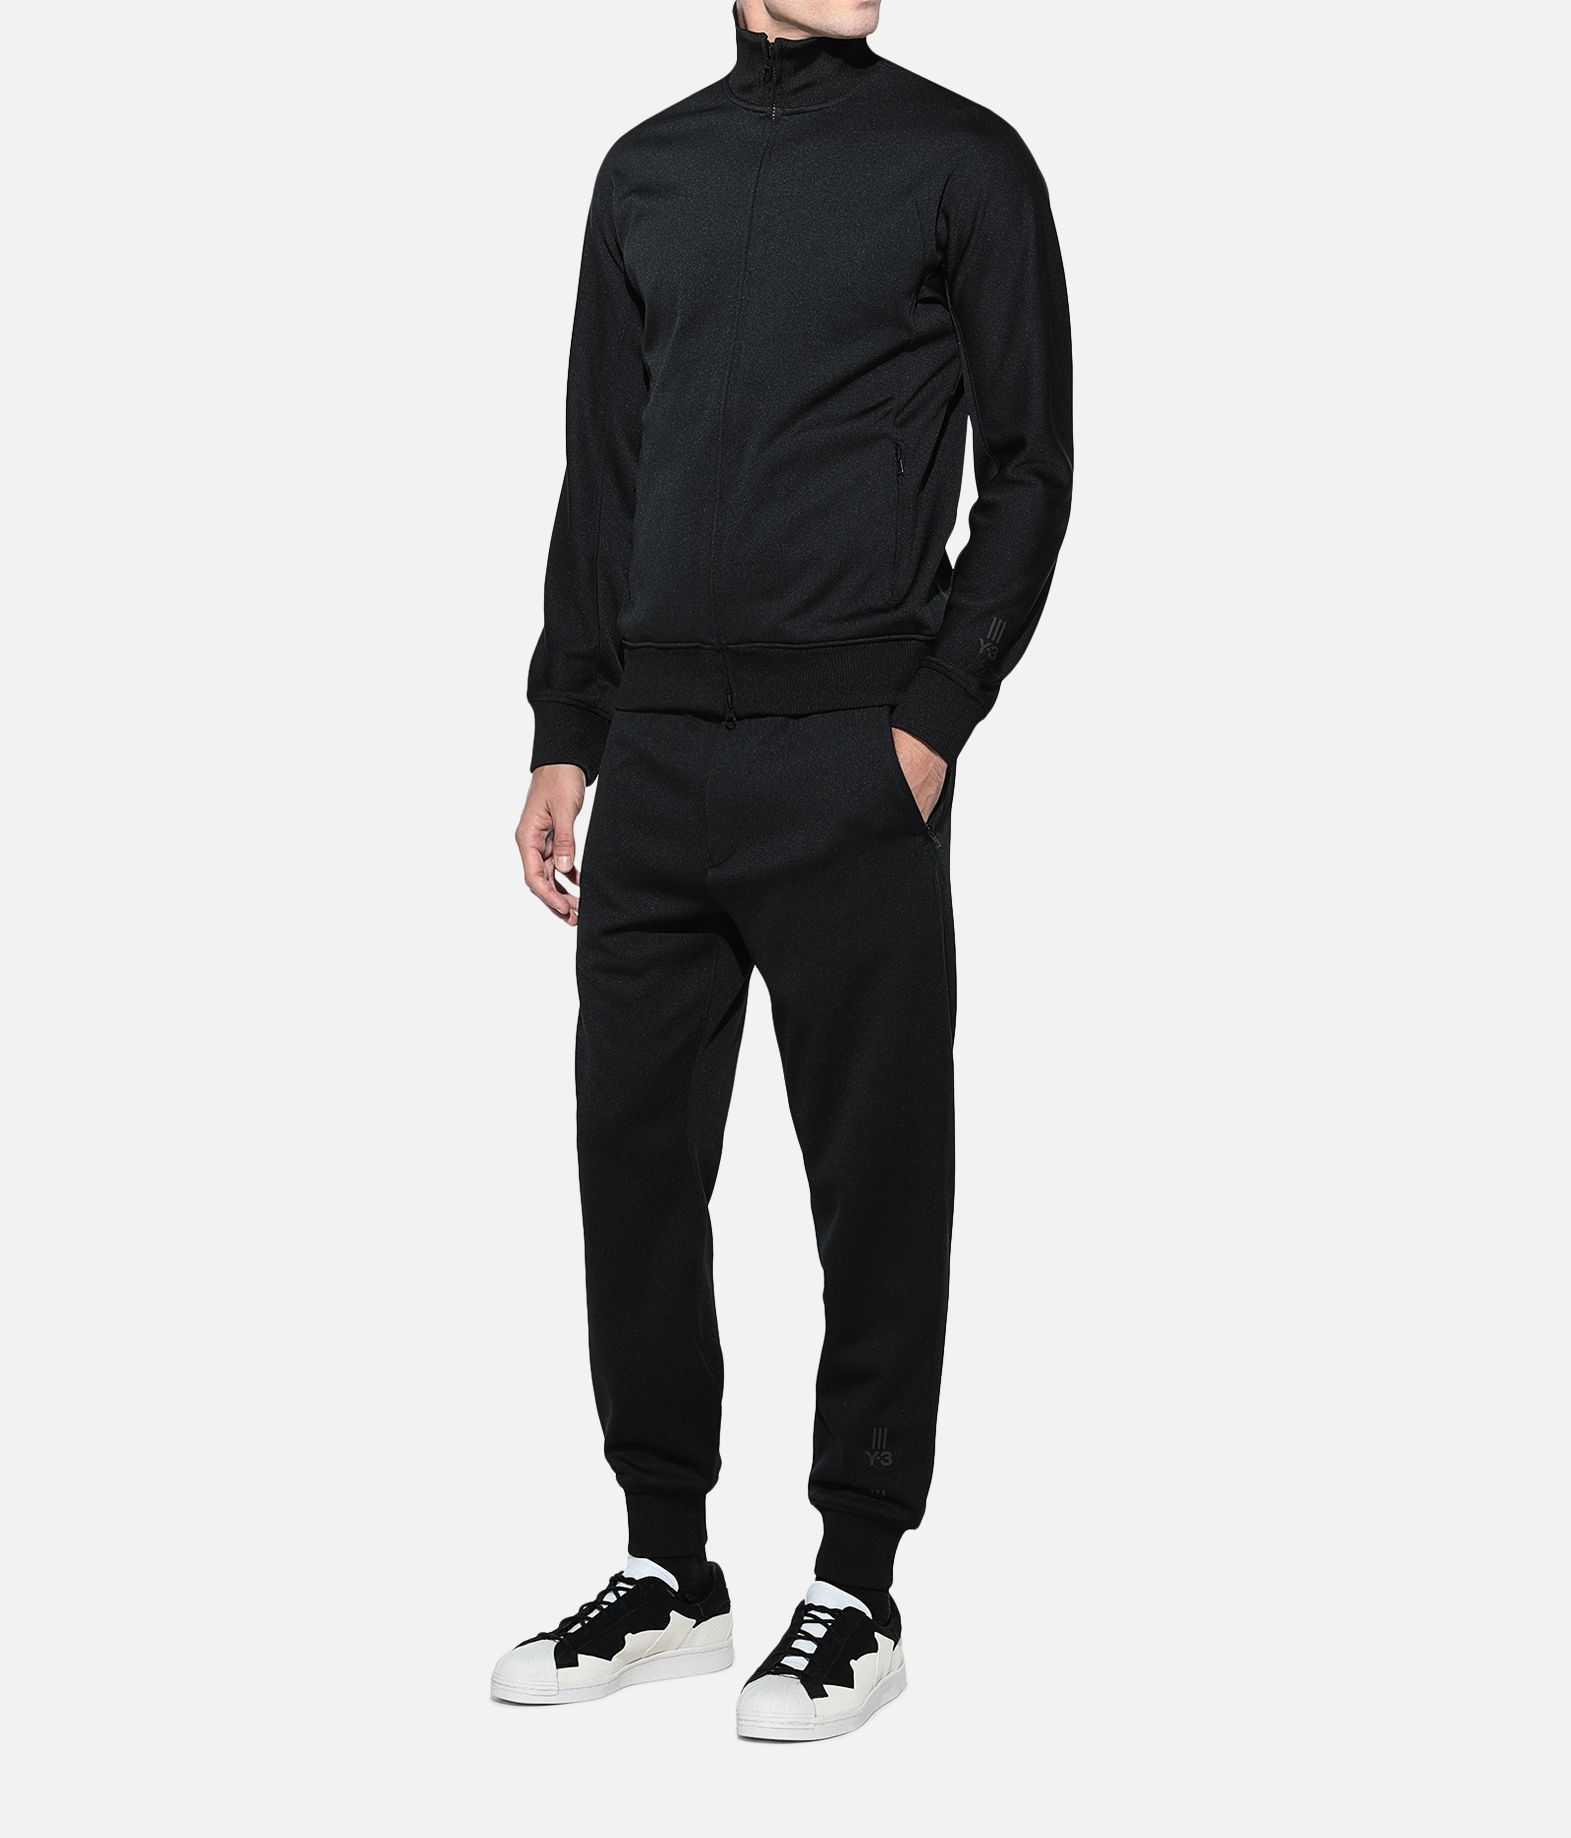 Y-3 Y-3 New Classic Track Pants Track pant Man a